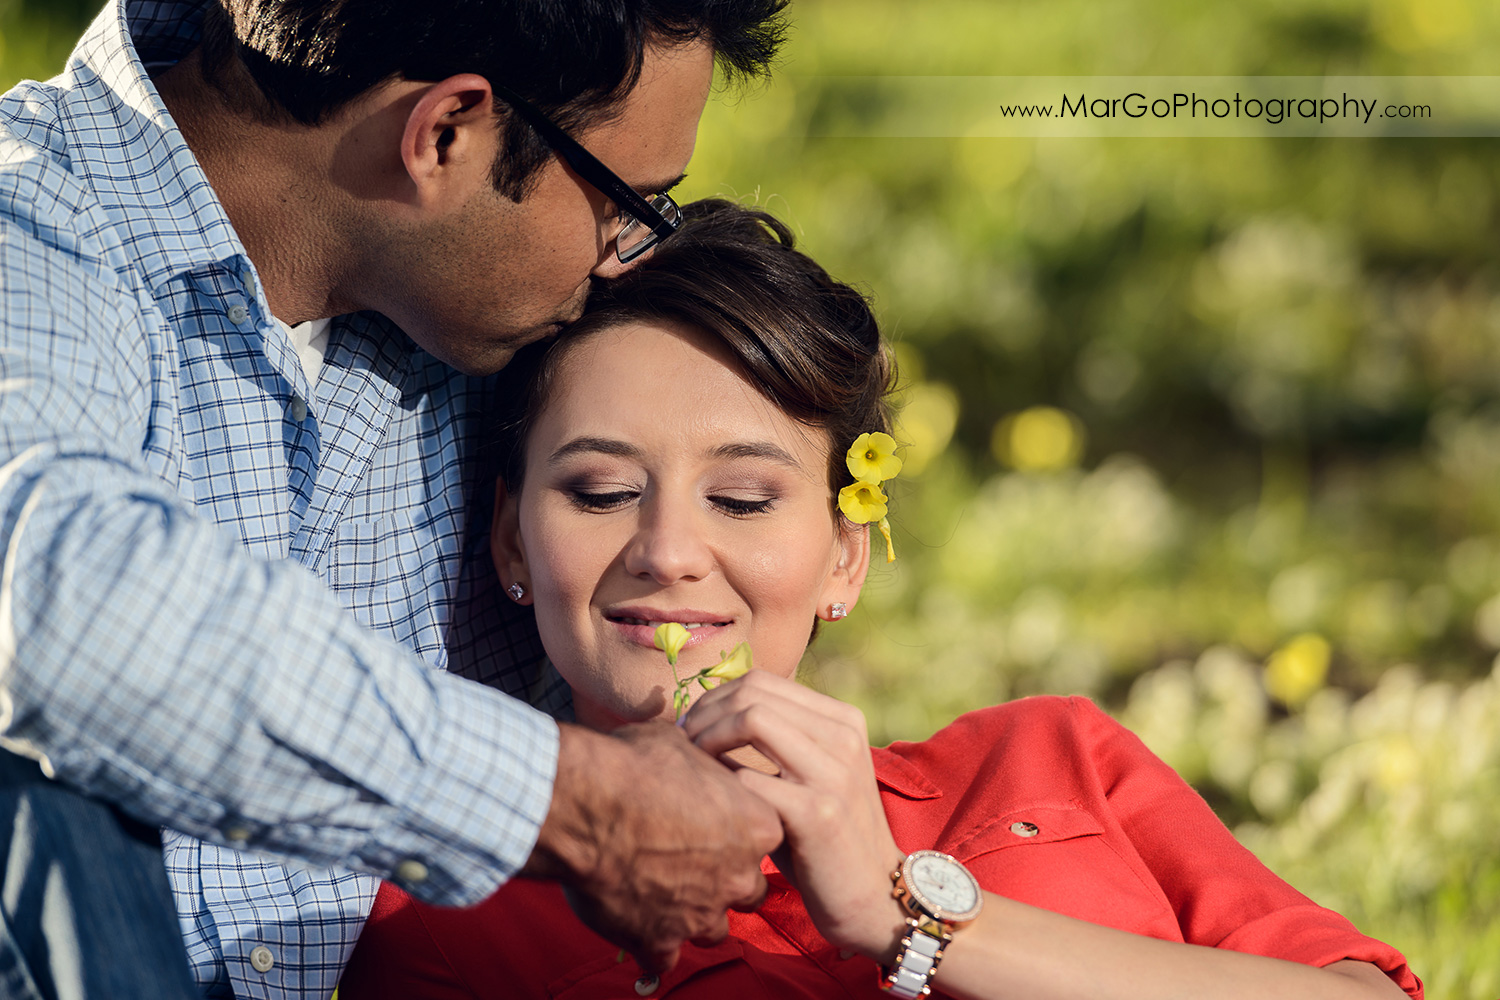 close-up of man in blue shirt giving yellow flower to woman in red dress during engagement session at San Francisco Legion of Honor